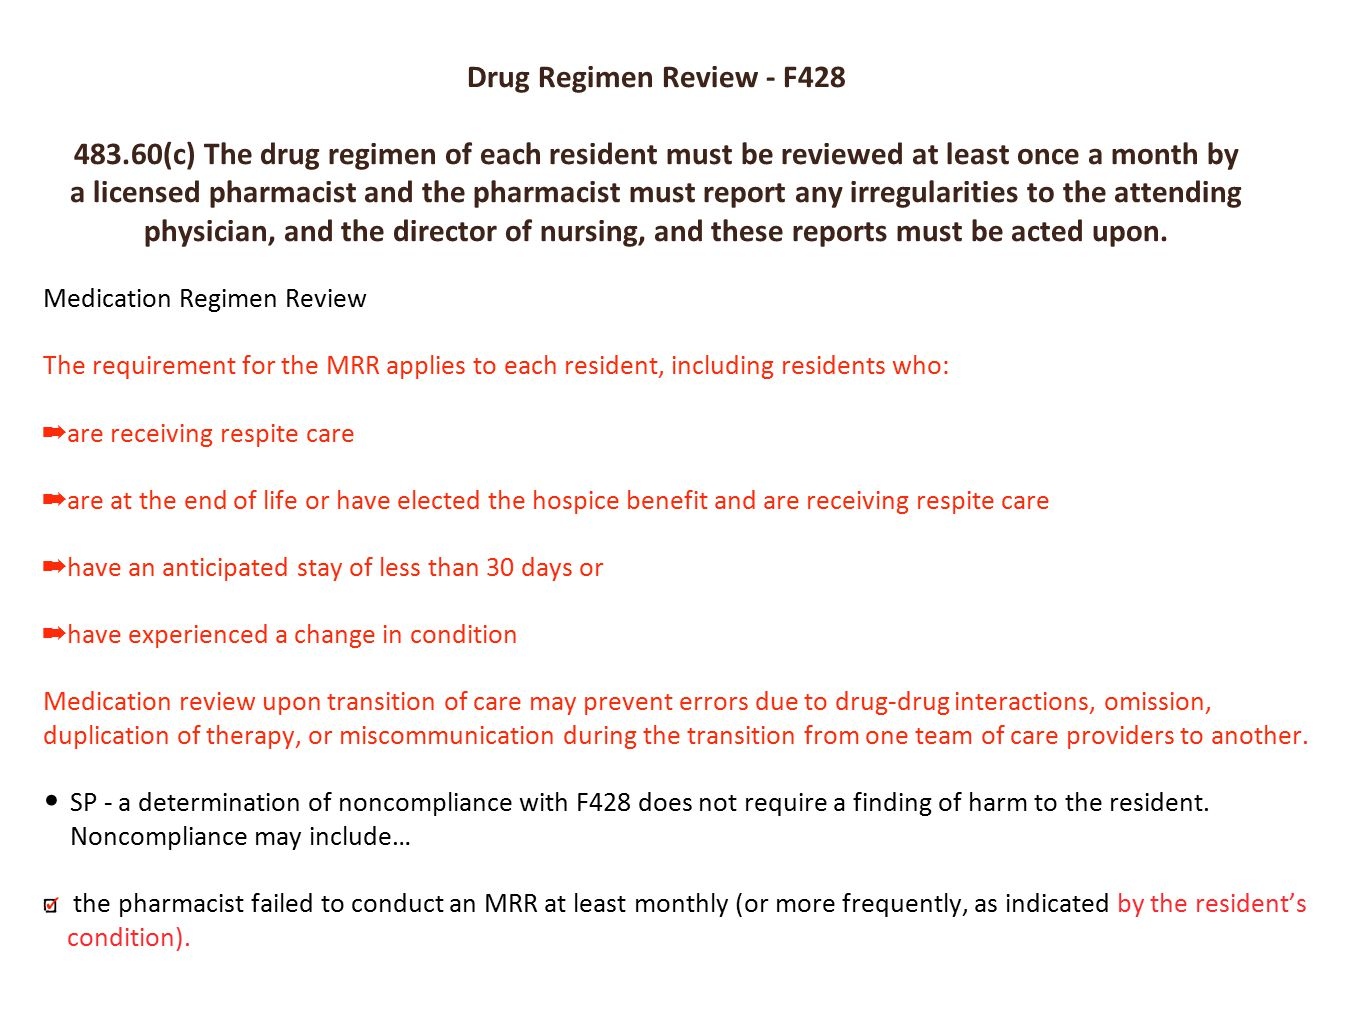 F428 is the Drug Regimen review regulation. NEXT